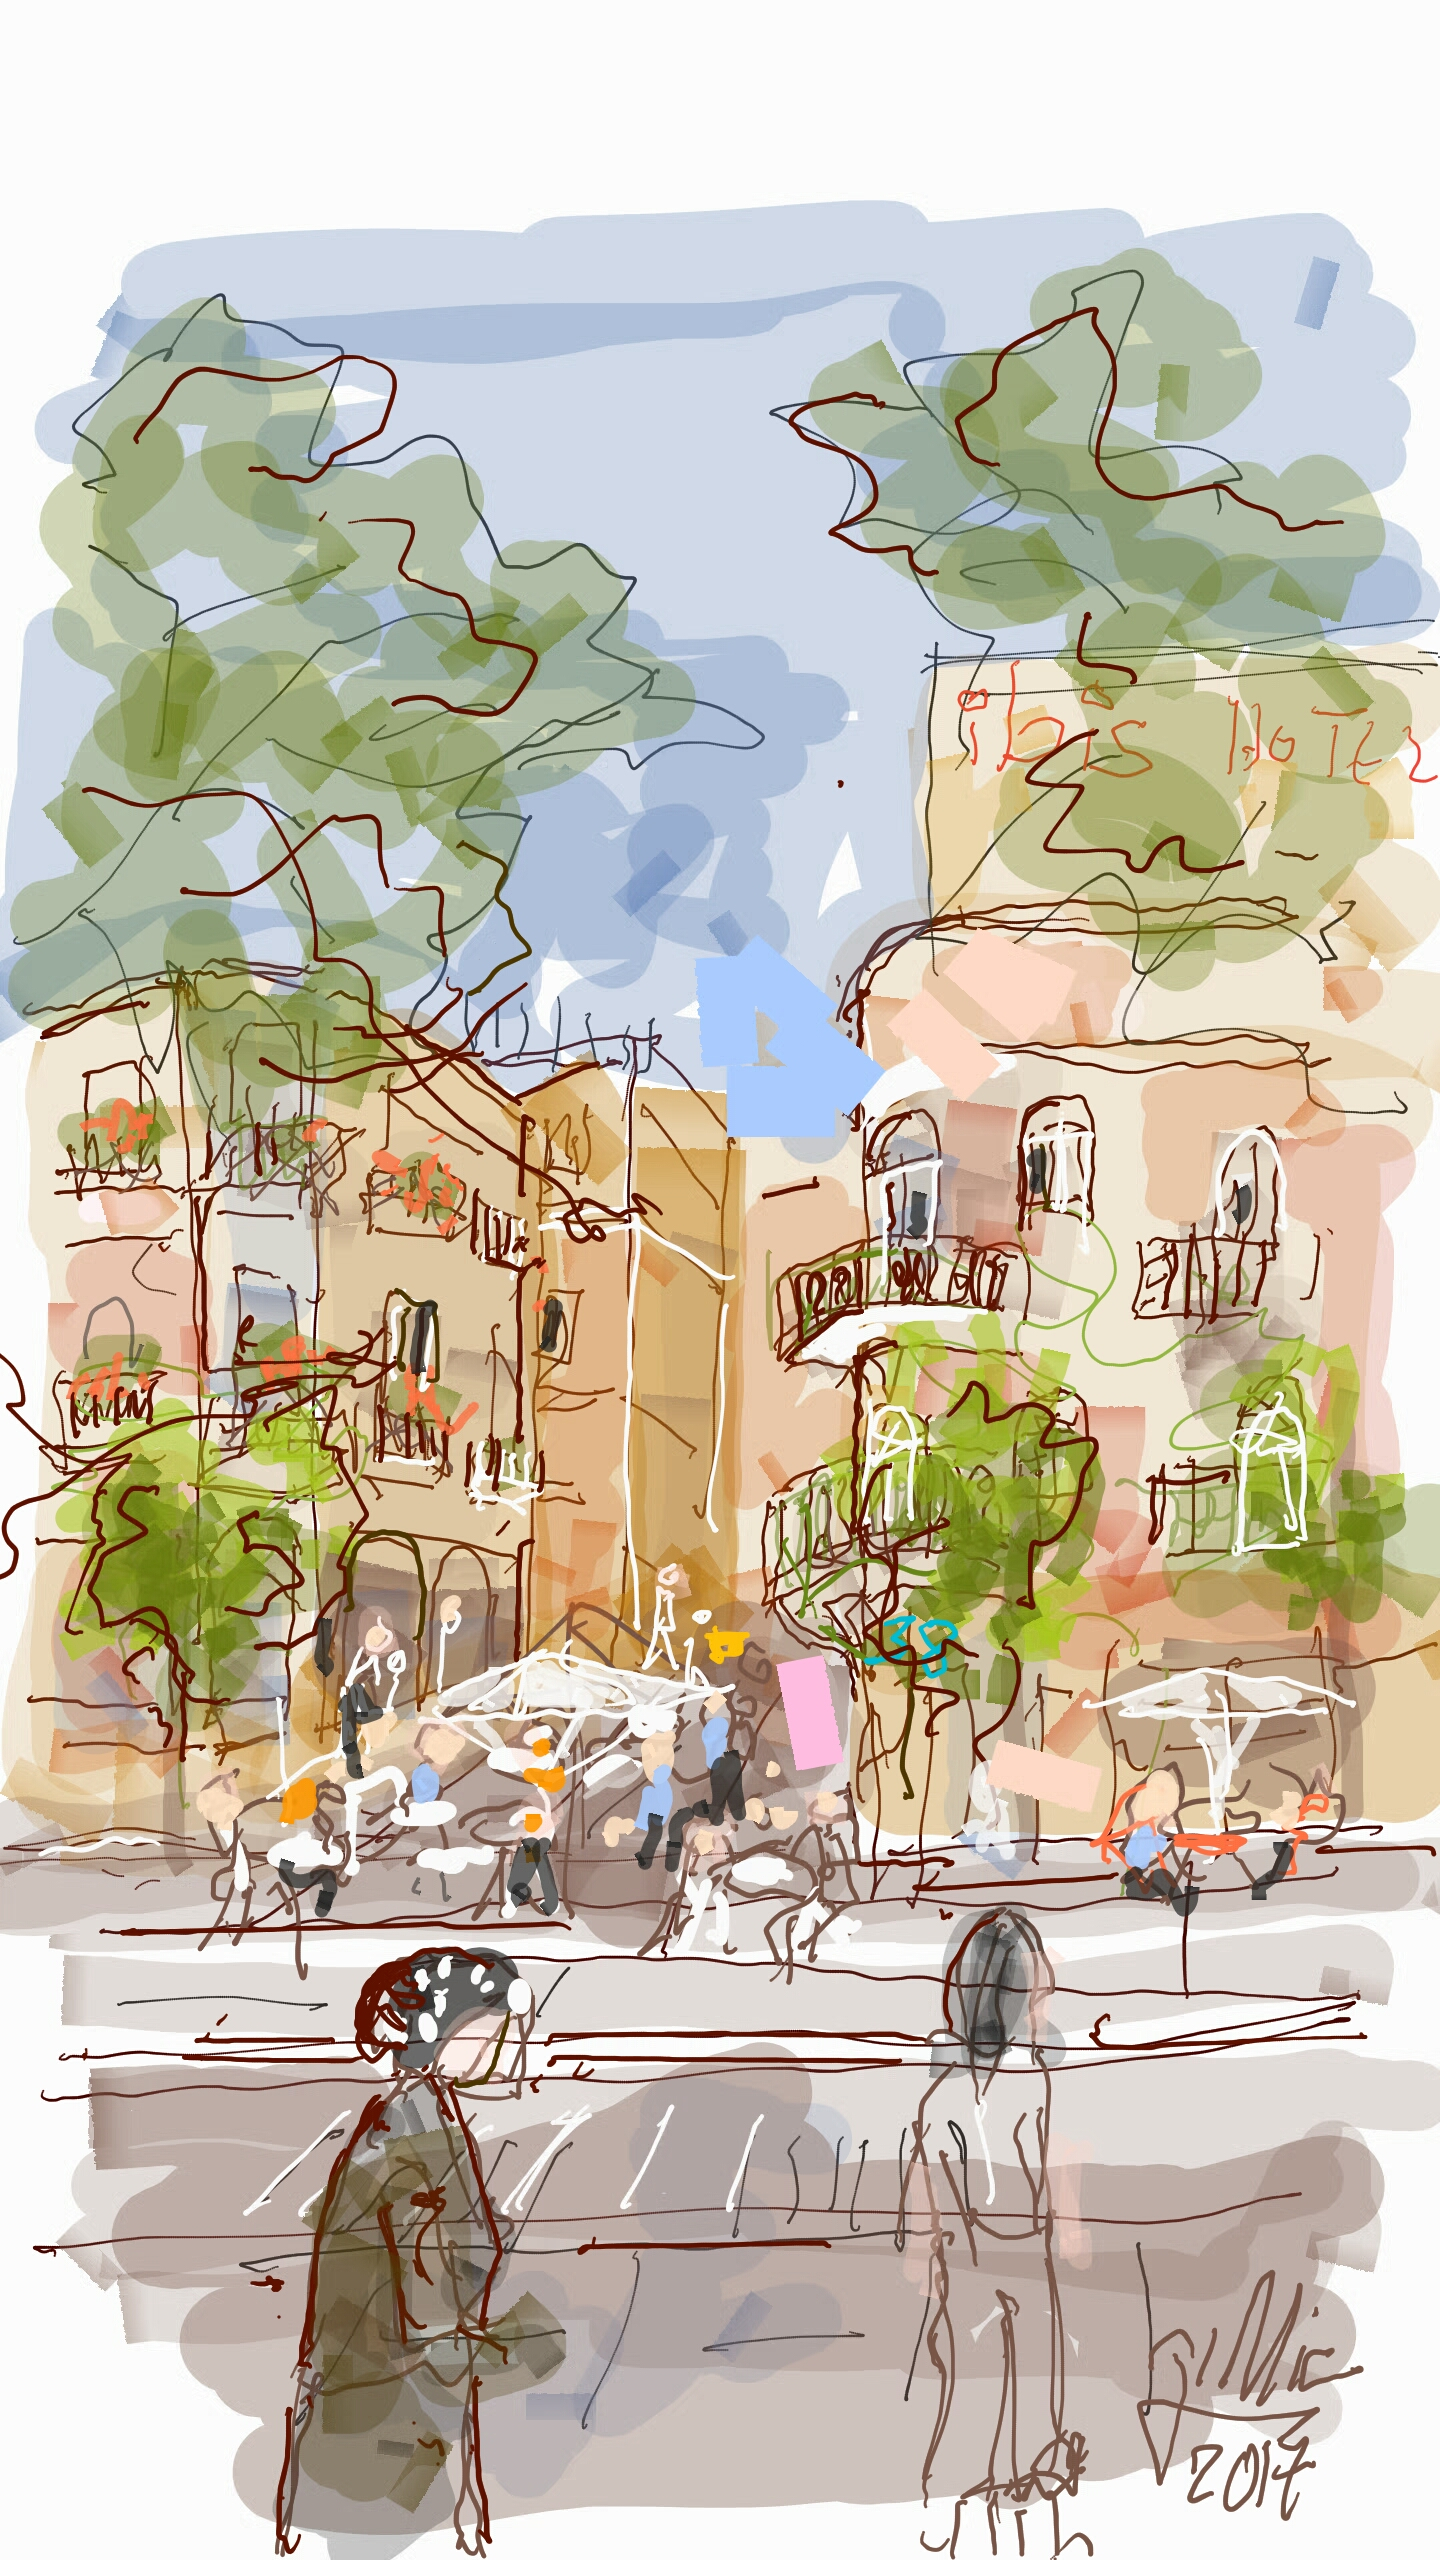 A Digital Free Hand Painting Journey Along Jaffa Street in Jerusalem